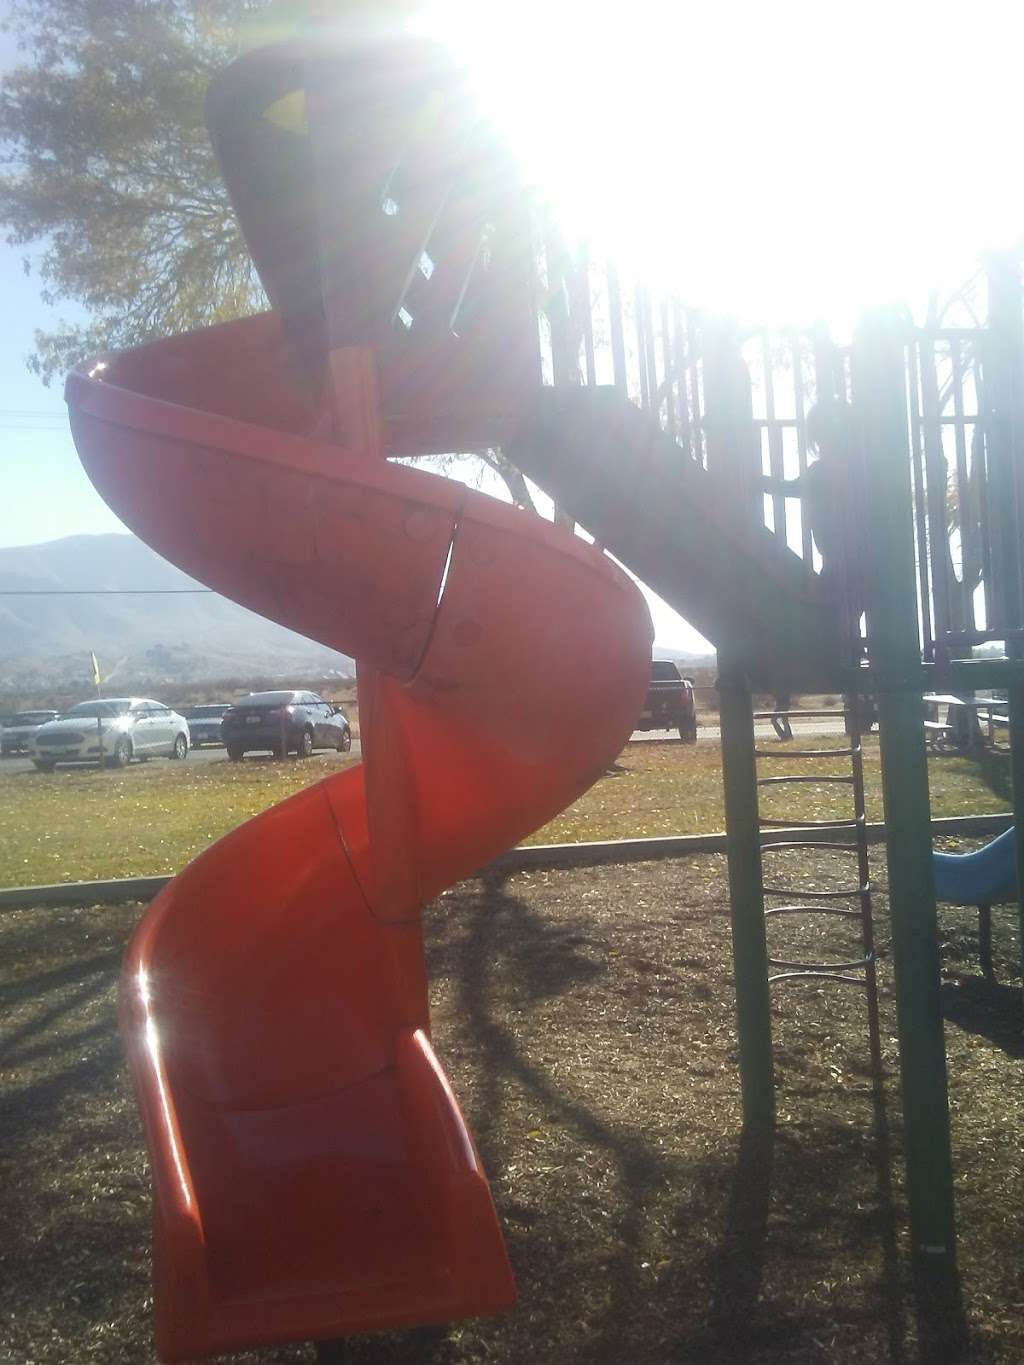 Mendel Park - park  | Photo 7 of 10 | Address: 21860 Tussing Ranch Rd, Apple Valley, CA 92308, USA | Phone: (760) 240-7000